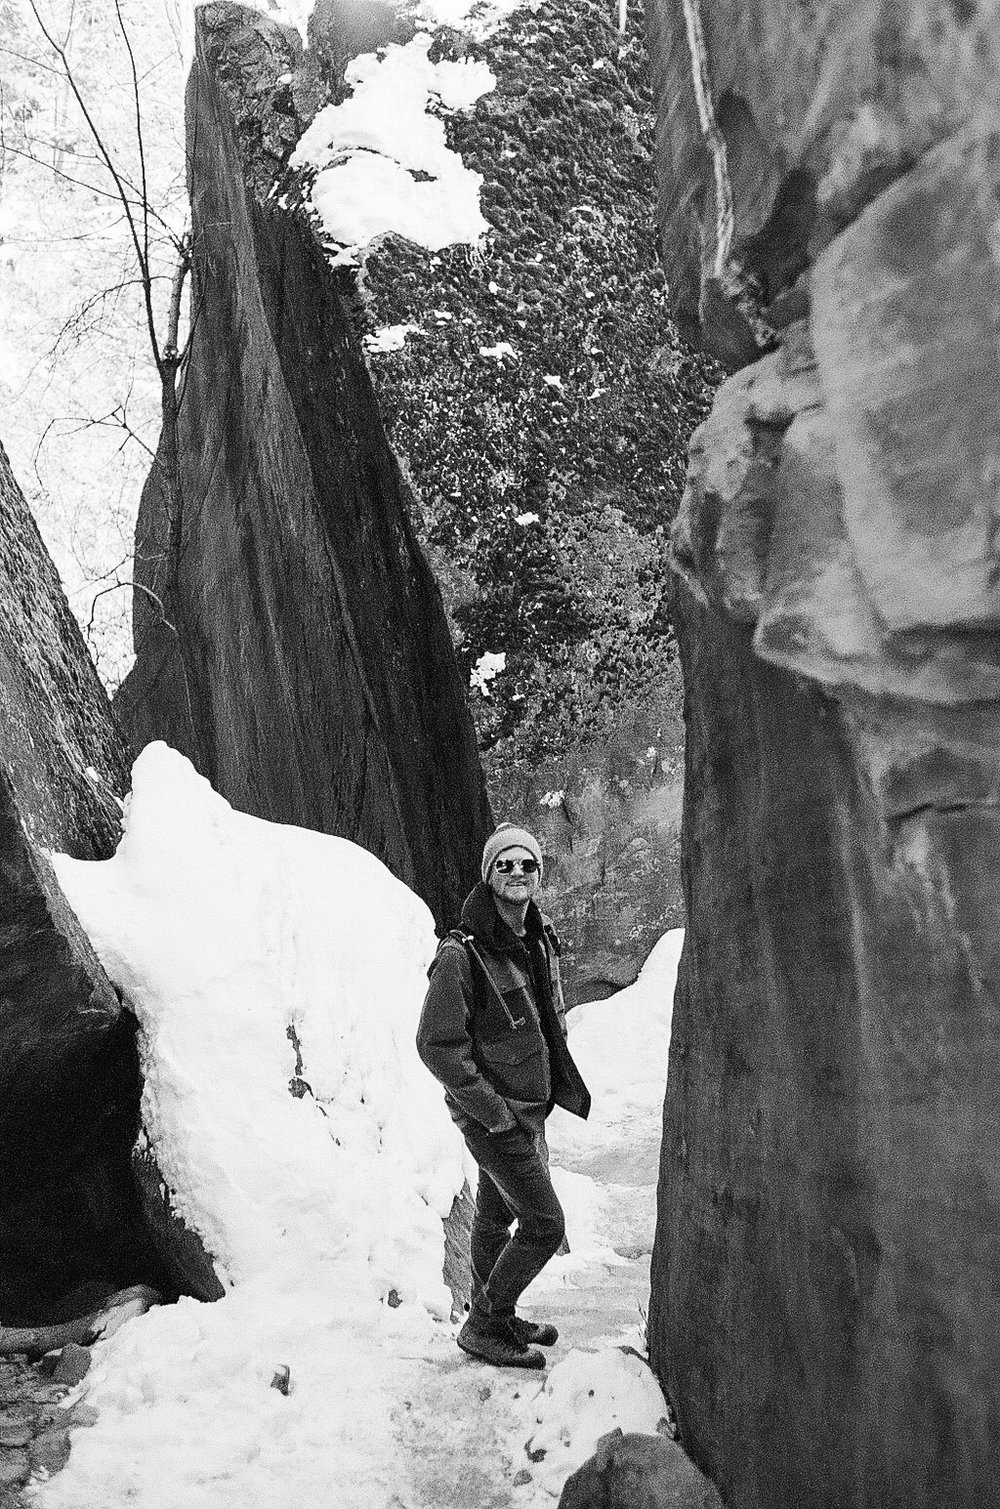 The trails in Zion are slick with ice and snow, but we brave them, Jacob my trusty scout.